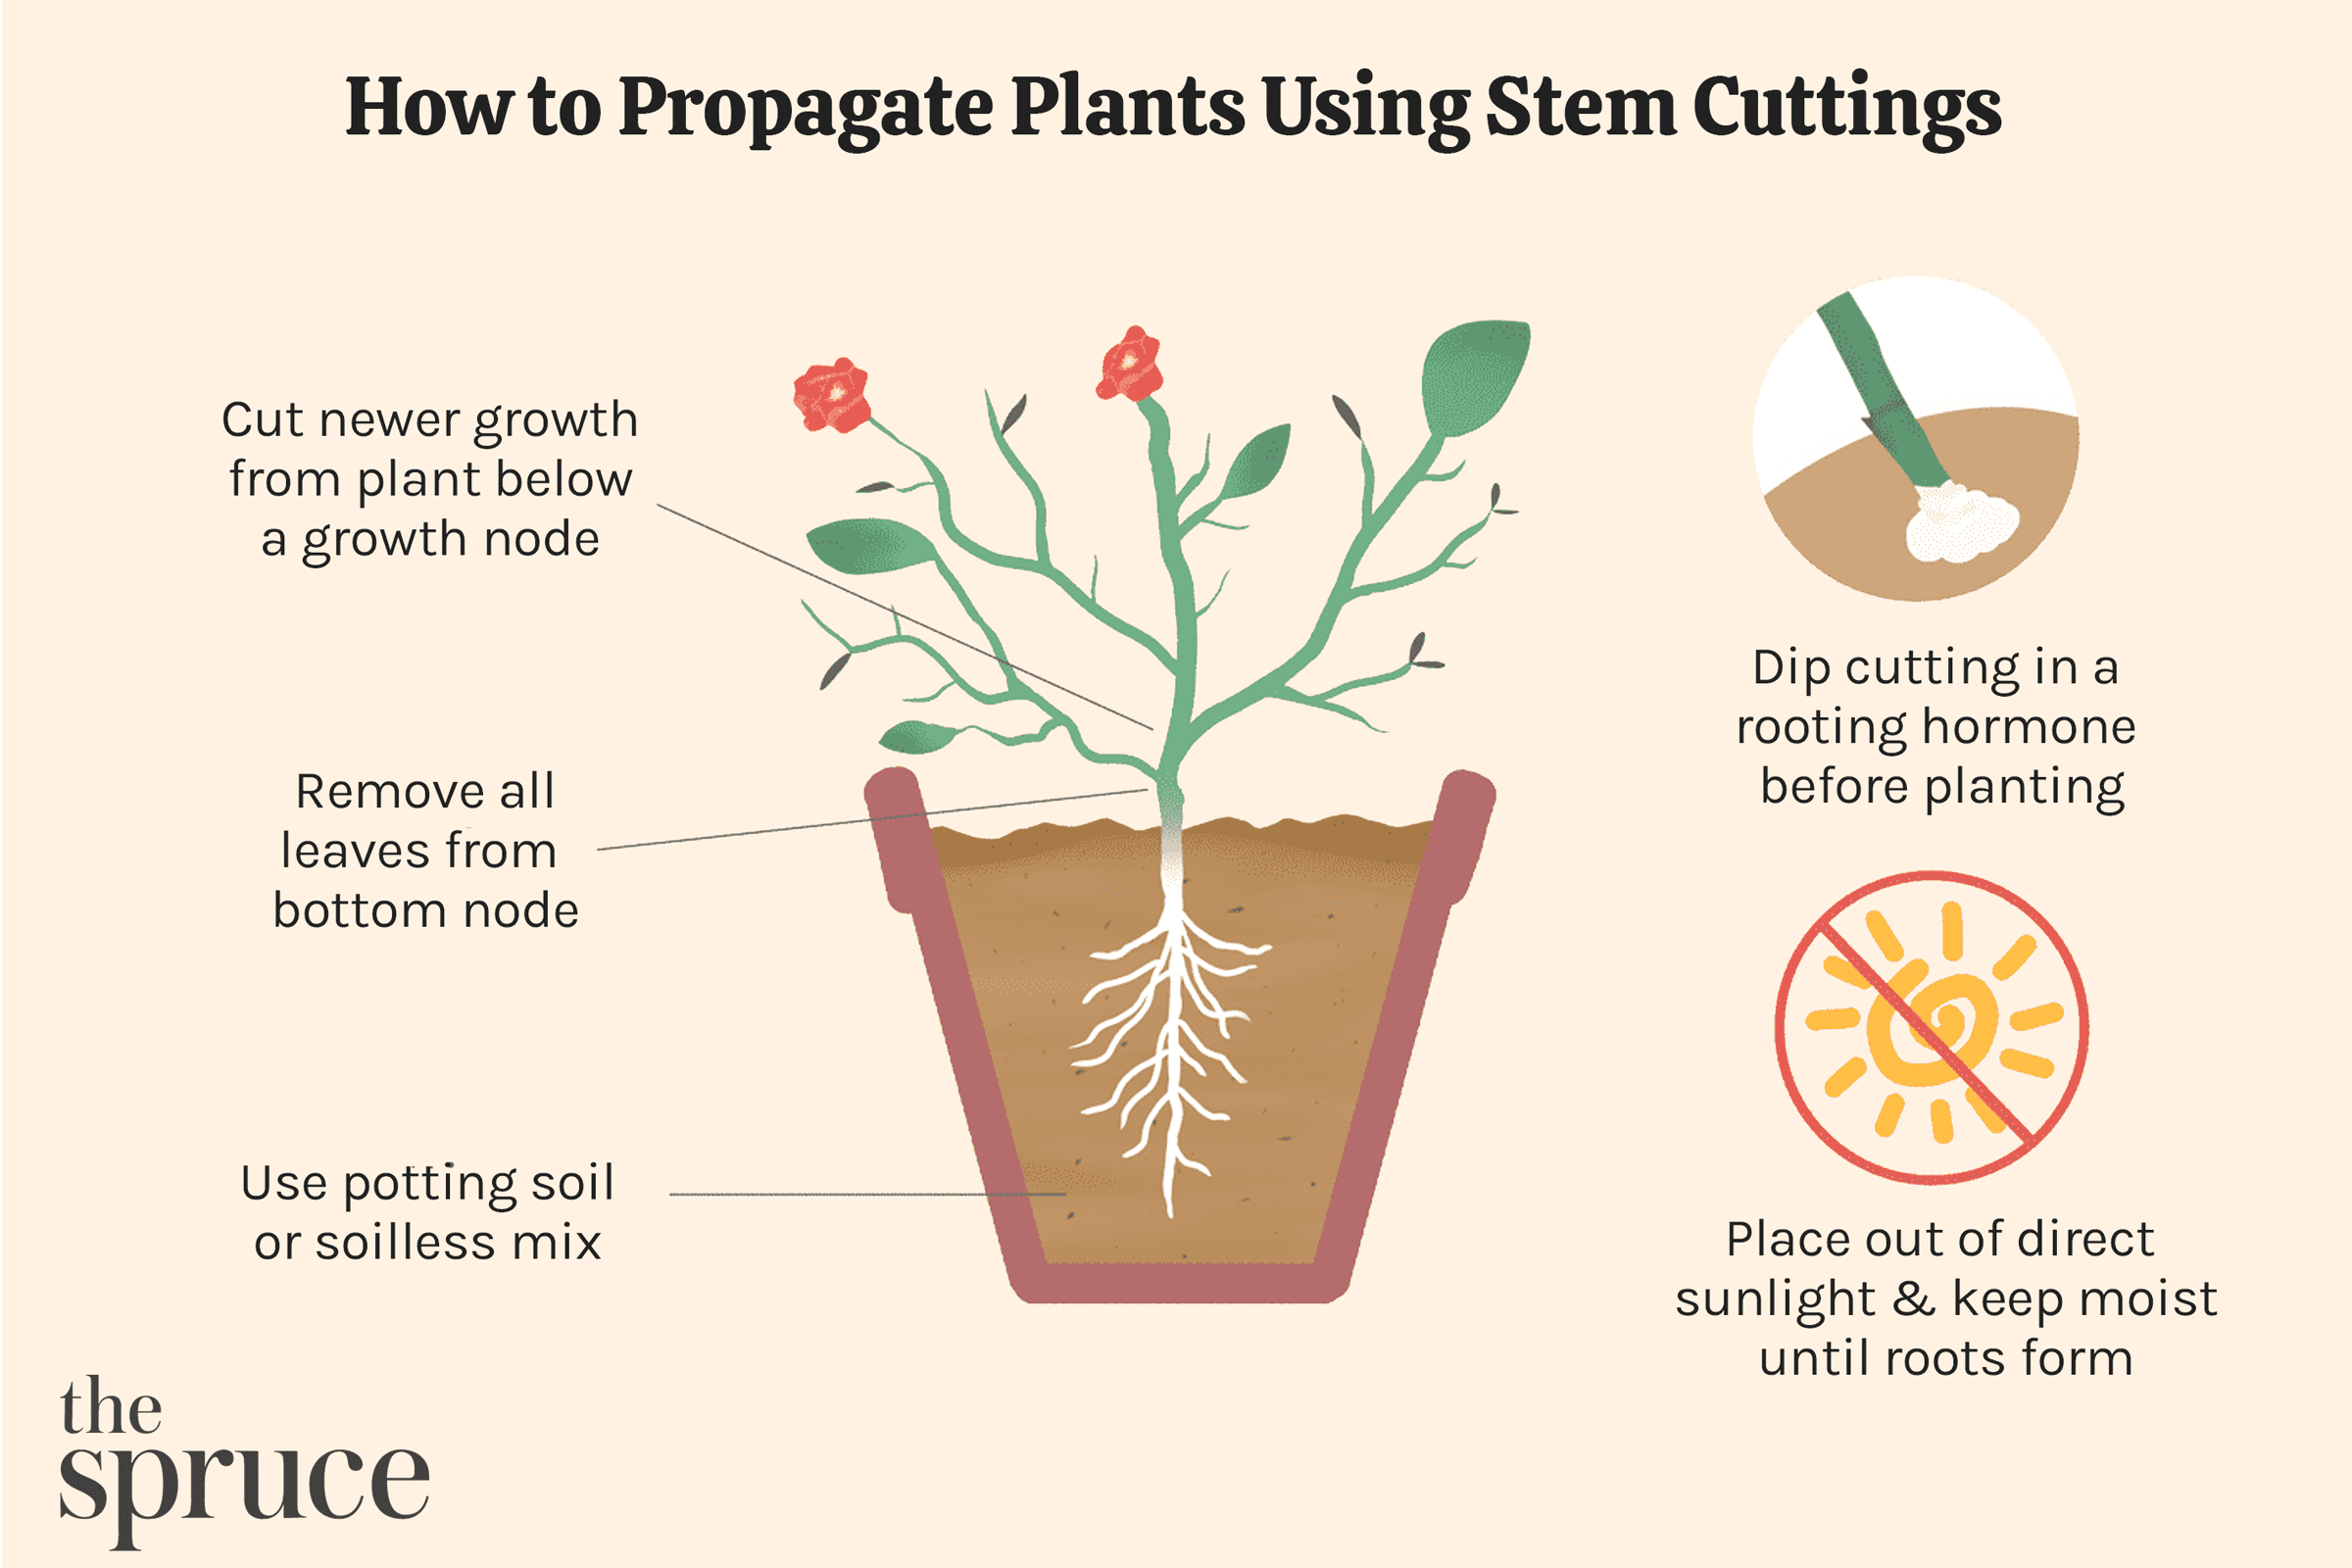 How to Propagate Plants Using Stem Cuttings